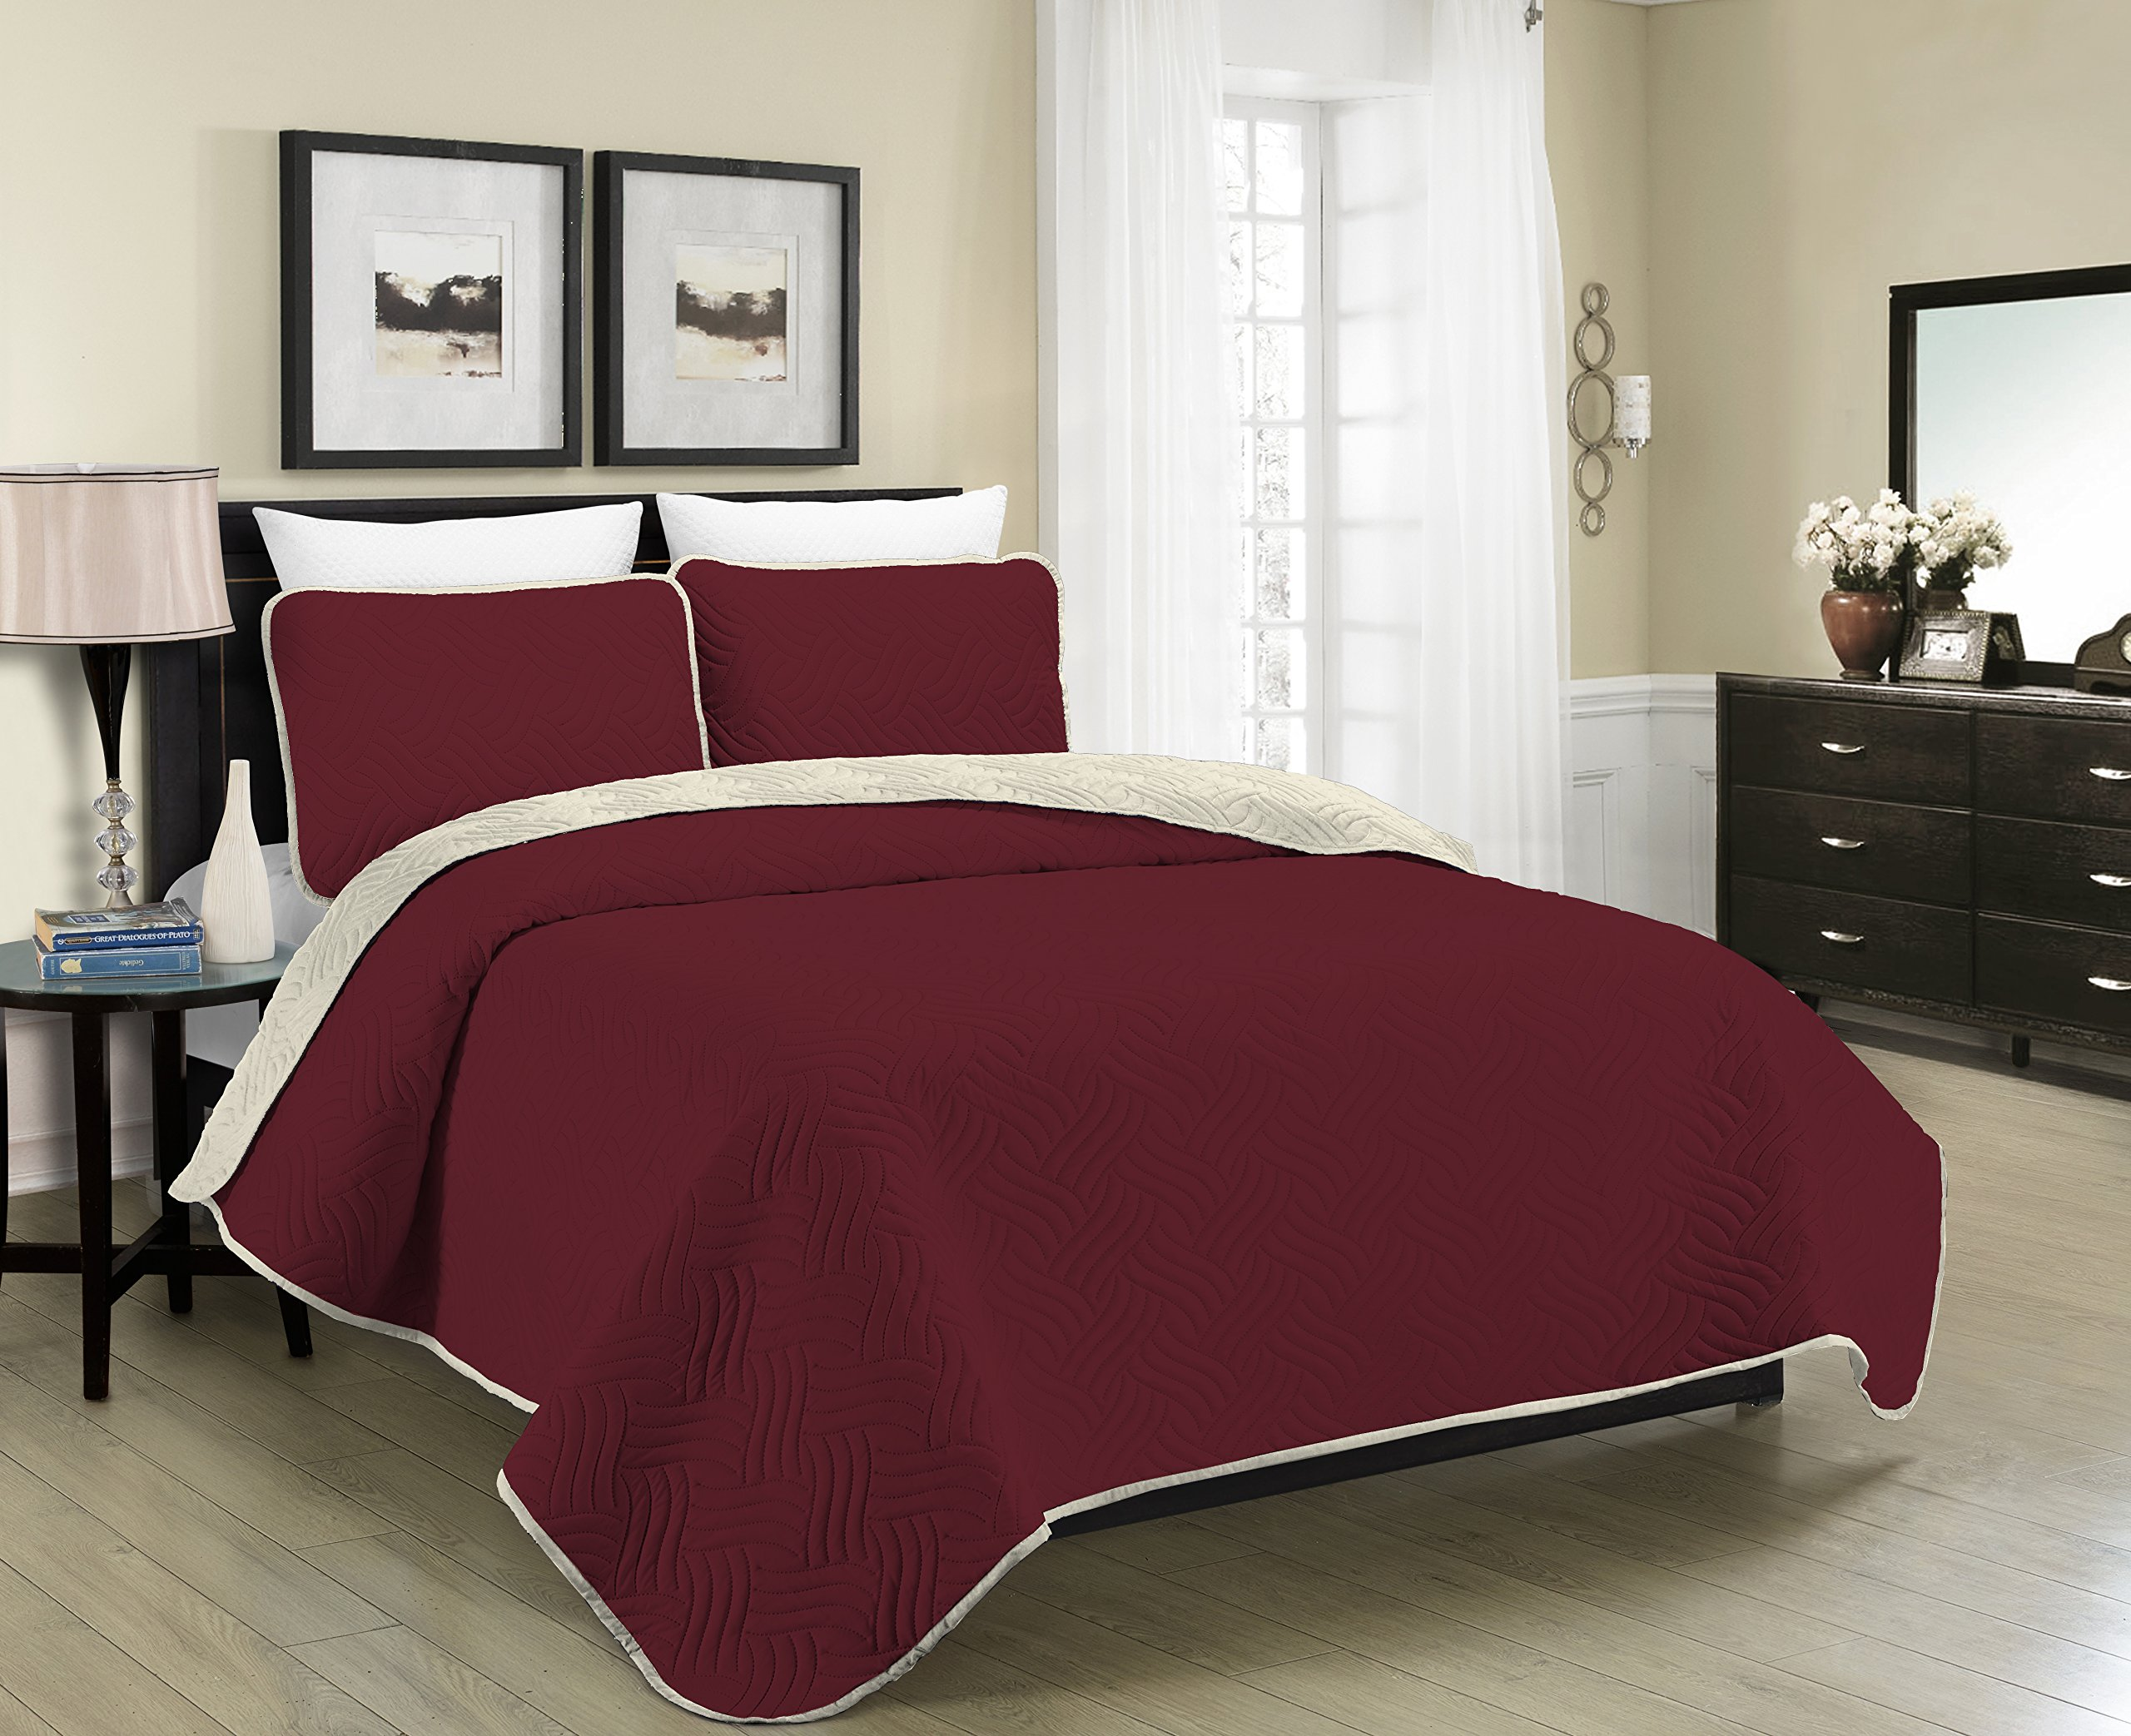 Blissful Living Reversible Luxury Pinsonic Solid Quilt Set Including Shams – Lightweight and Soft for All Year Round Comfort, Available in Twin, Full/Queen and King Size (Burgundy/Cream, King)